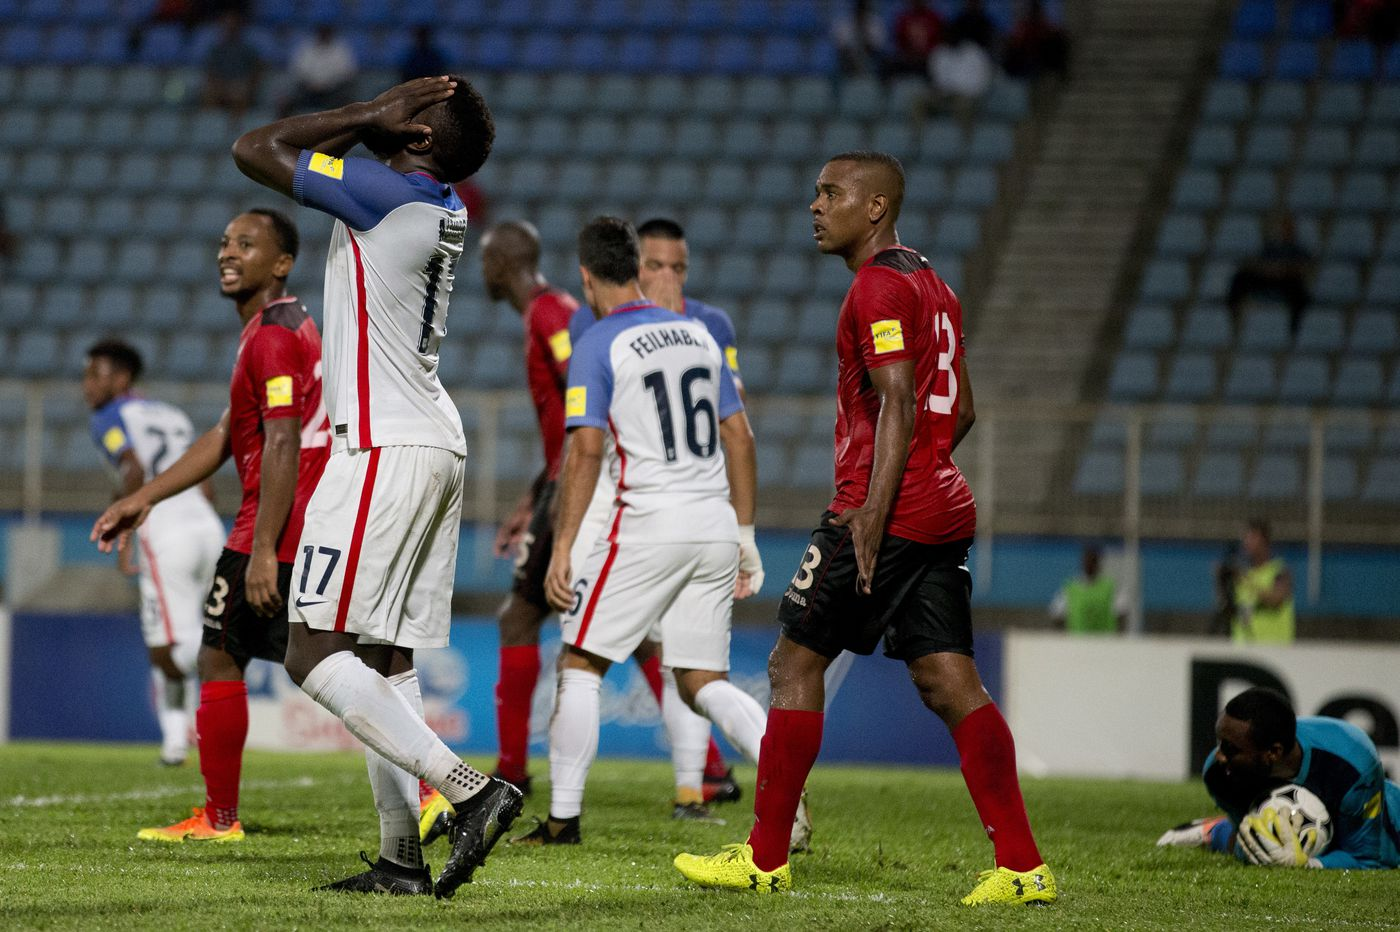 Concacaf Gold Cup 2019 schedule: USMNT to face Trinidad & Tobago, Panama and Guyana